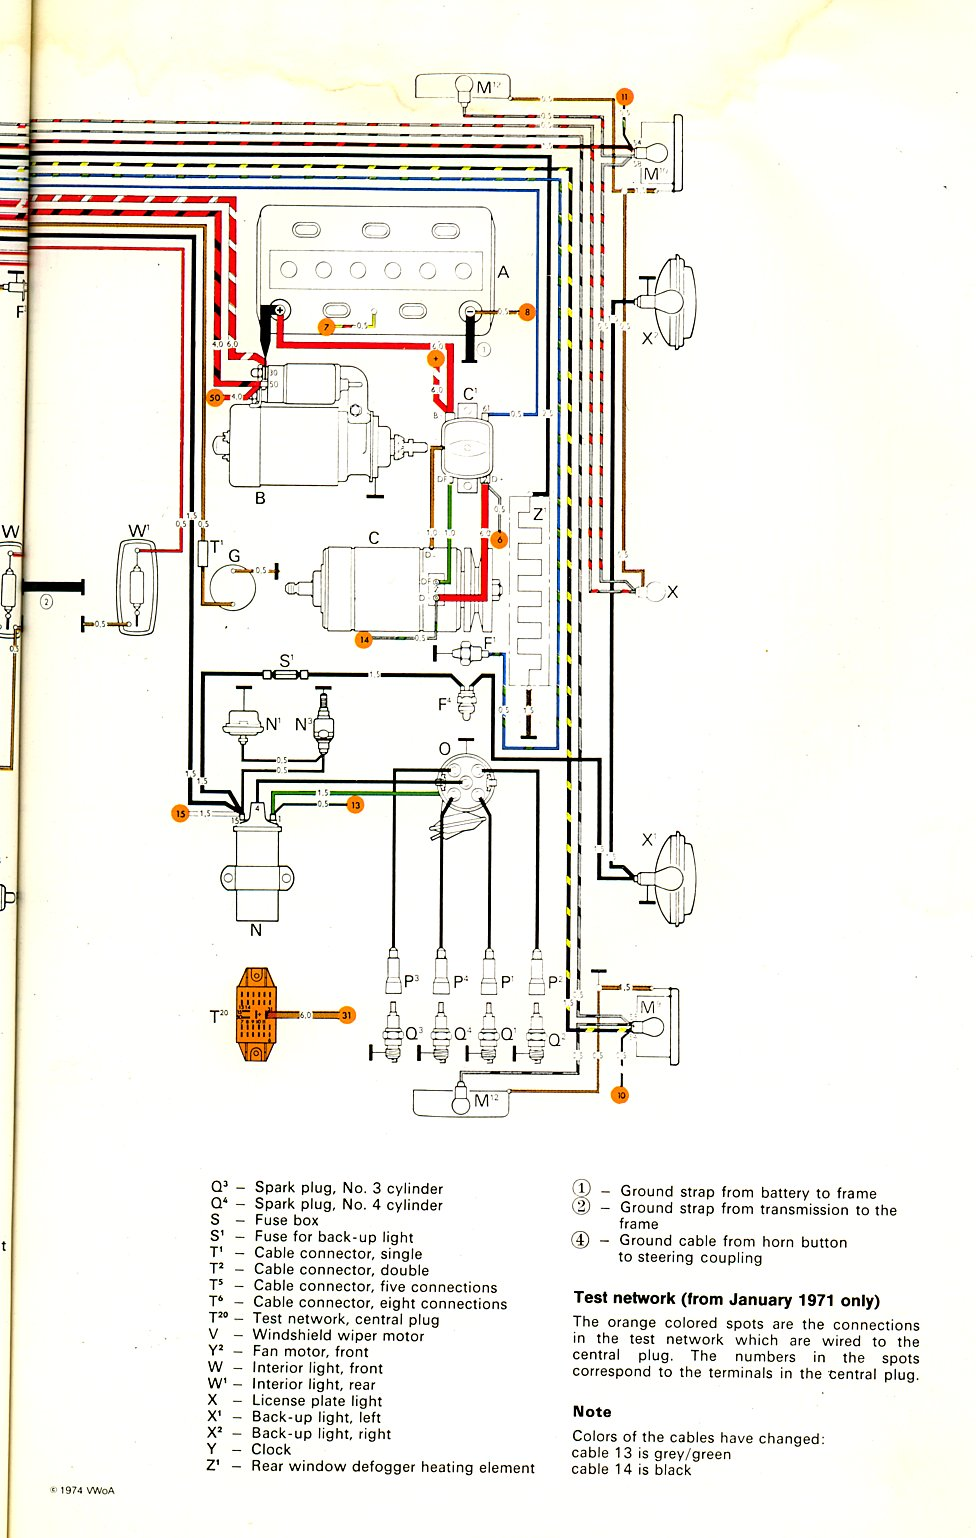 80 corvette fuse box auto electrical wiring diagram rh harvard edu co uk  sistemagroup me